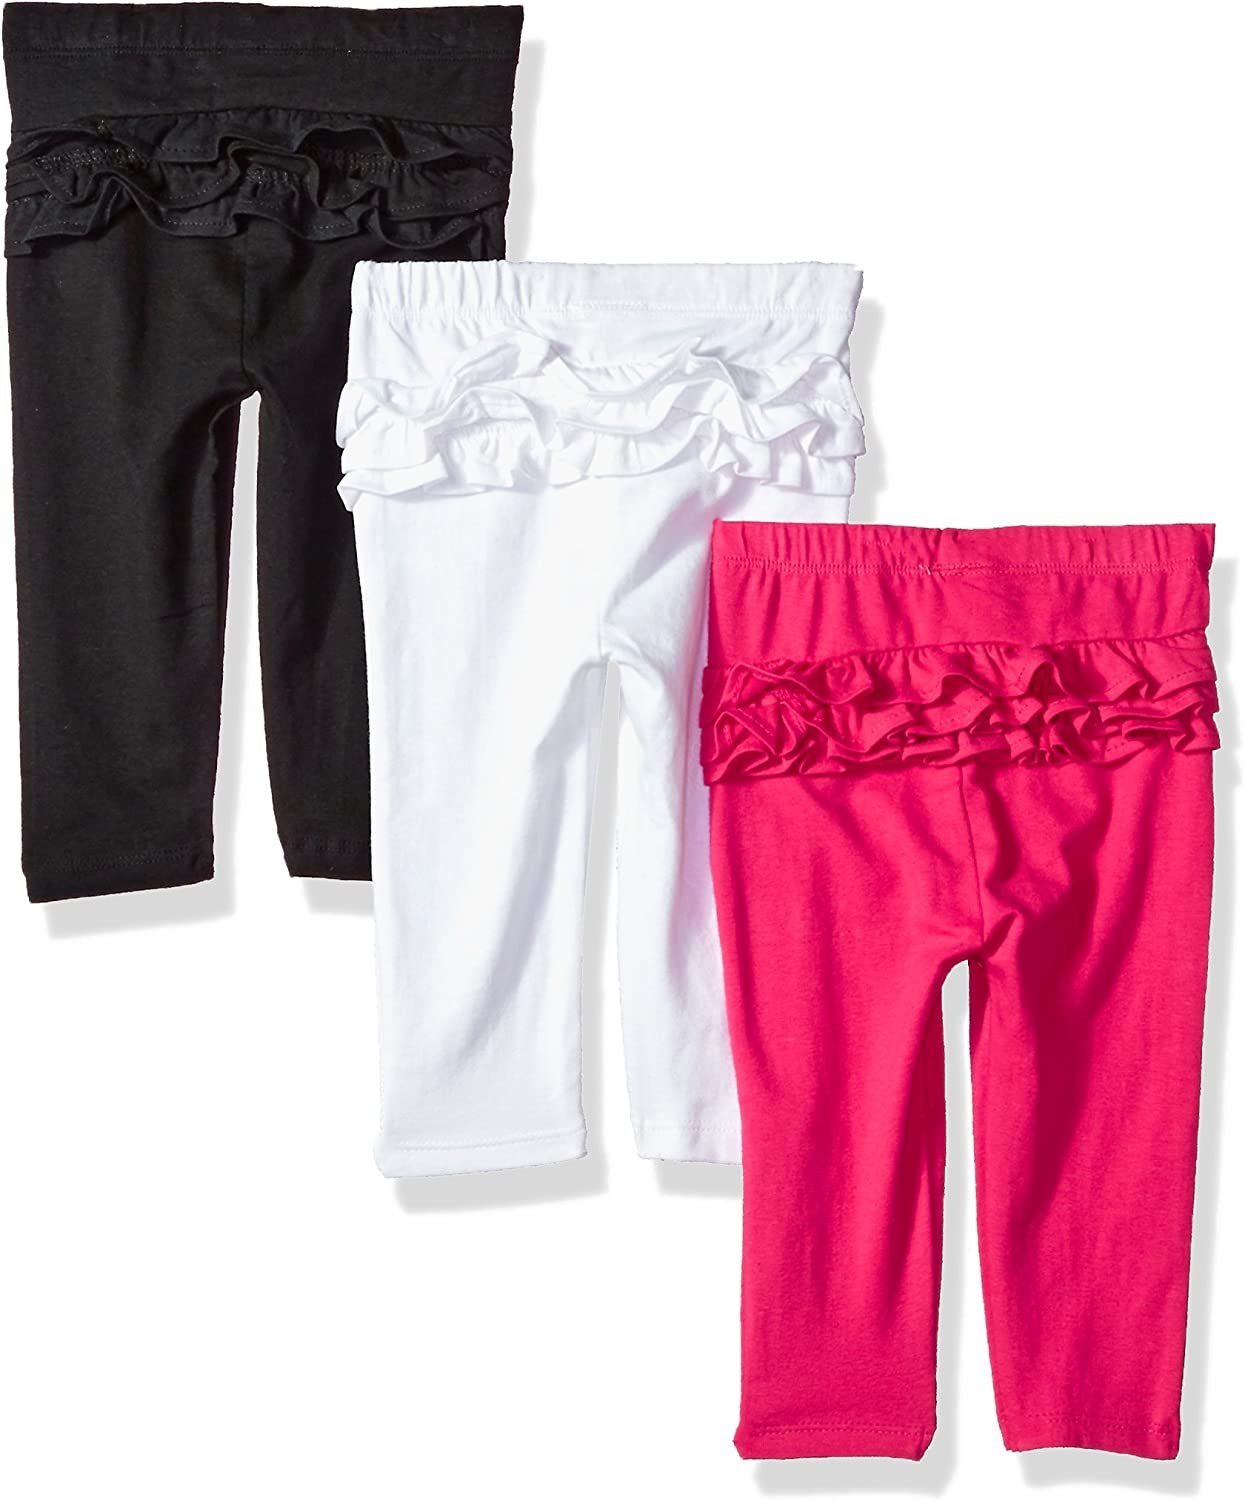 Polo Assn U.S Baby Girls 3 Pack Jersey Spandex Legging Pant